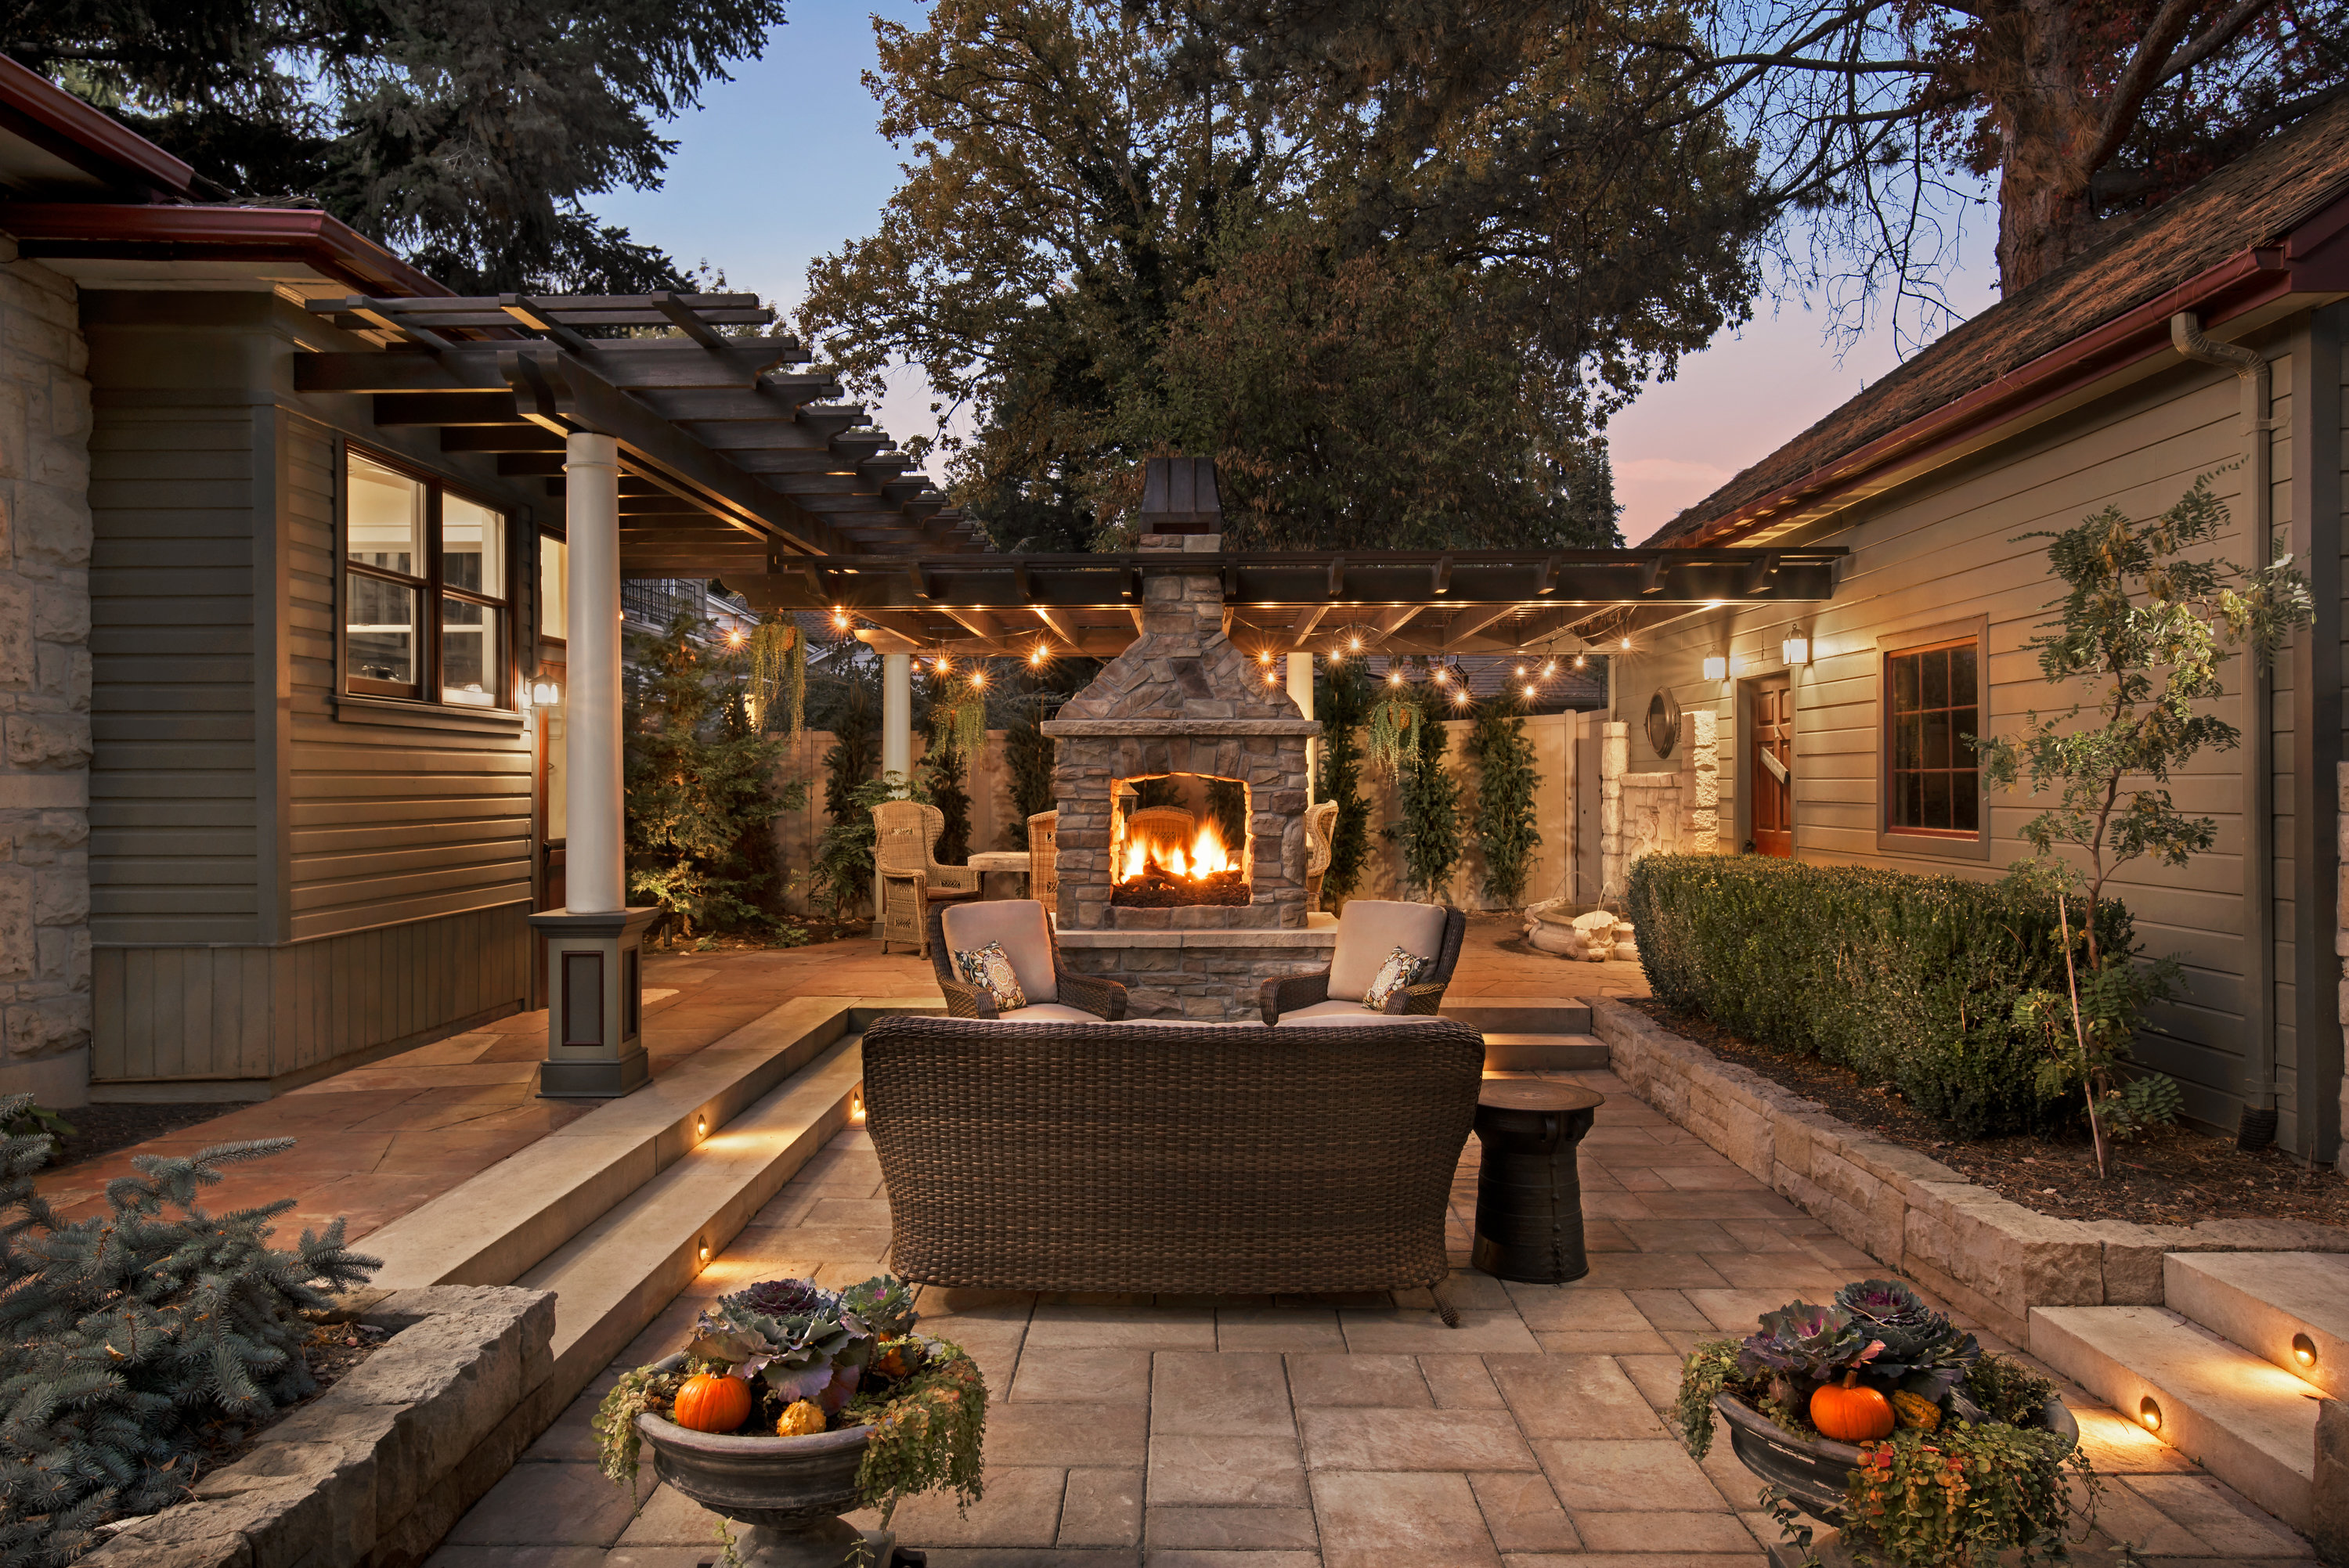 Ultimate Outdoor Living in Boise | The Garden Artist Boise, ID